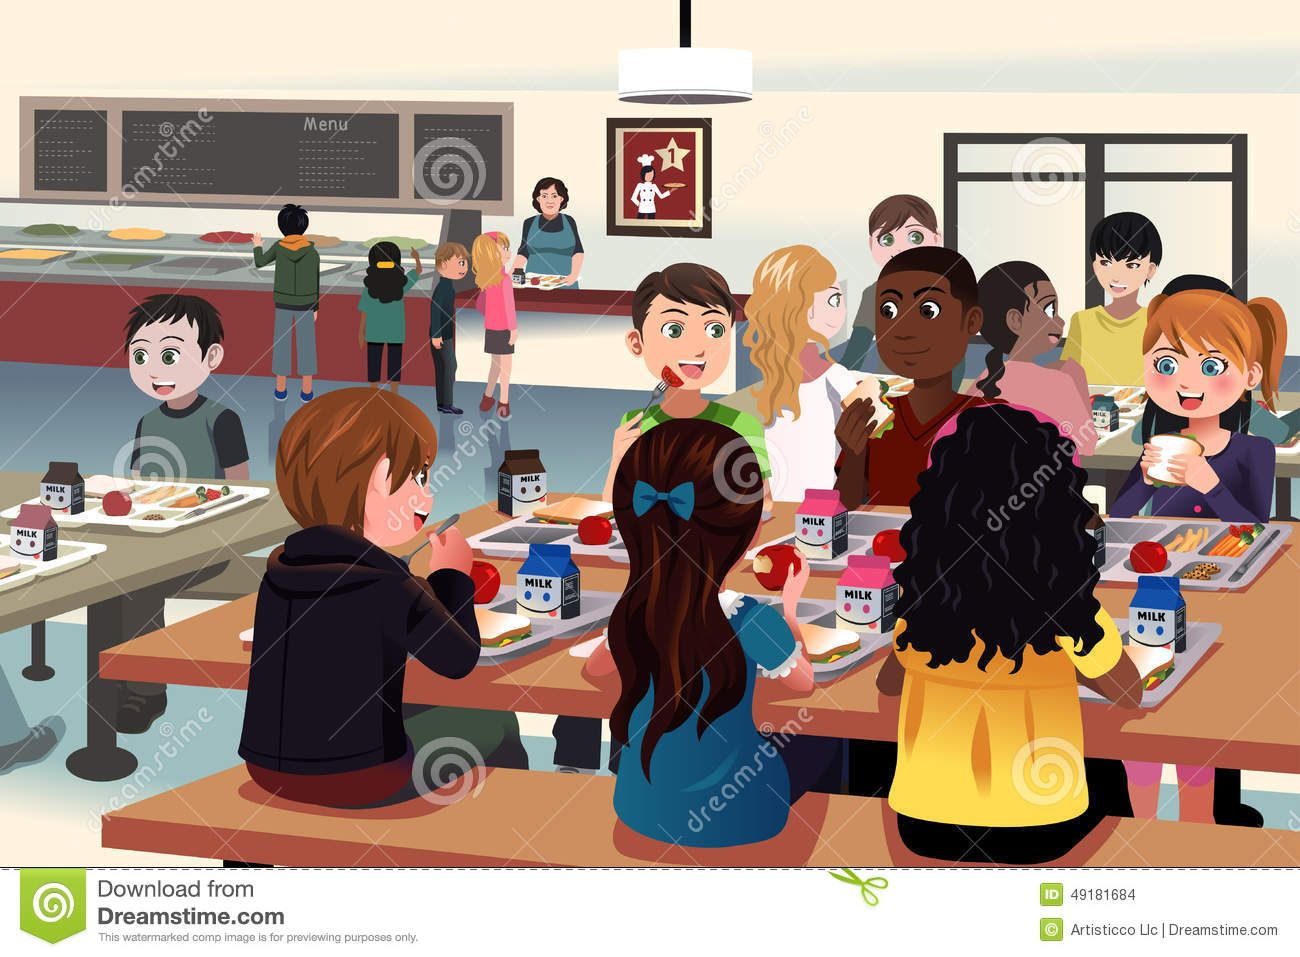 Image Result For School Cafeteria Cartoon Free Art Prints